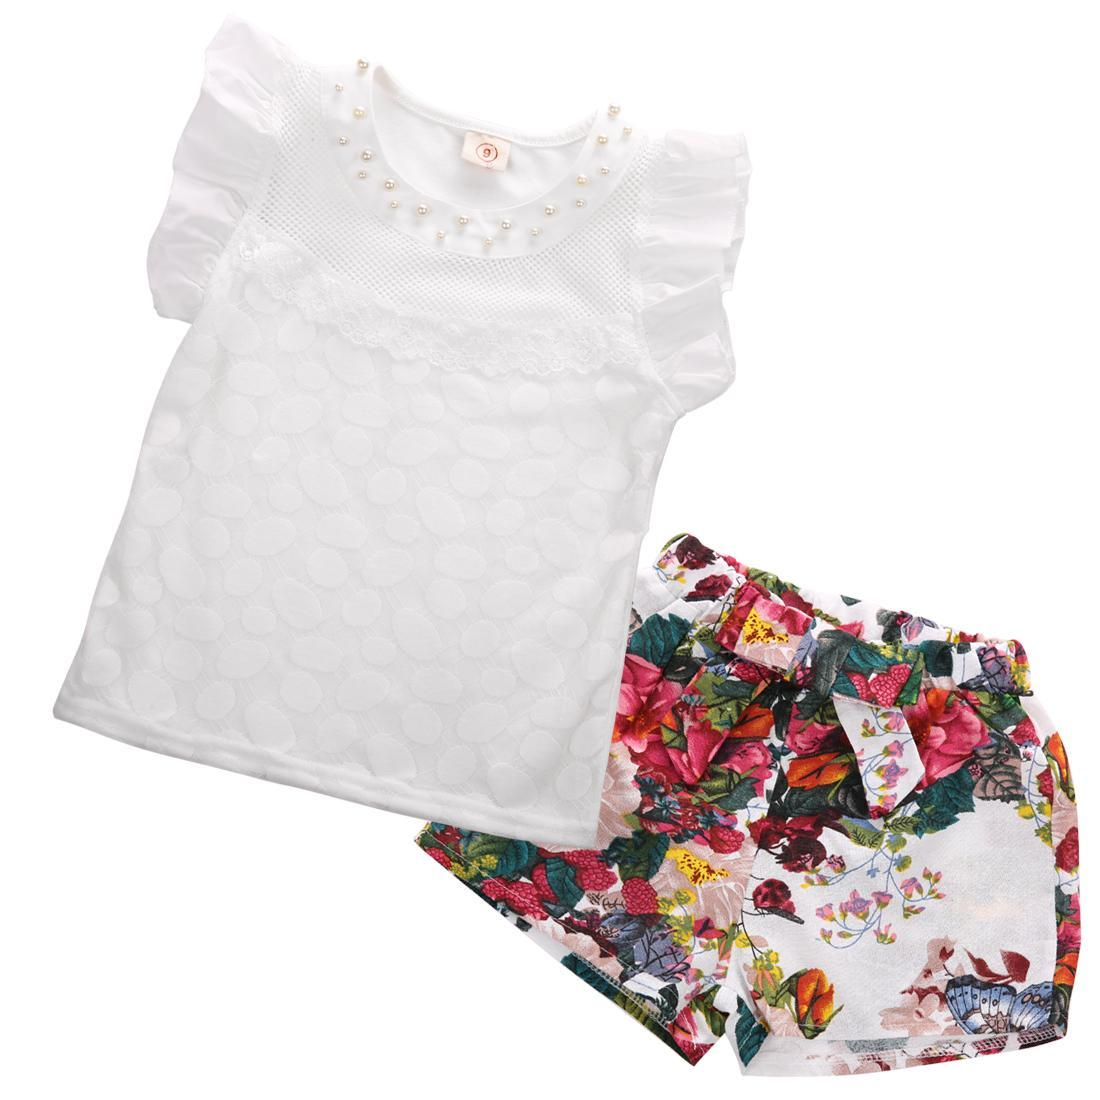 2-7Y Summer Baby Girl Kids Sleeveless Gold Beads Lace Solid Clothes Floral Elastic Band Shorts Outfit